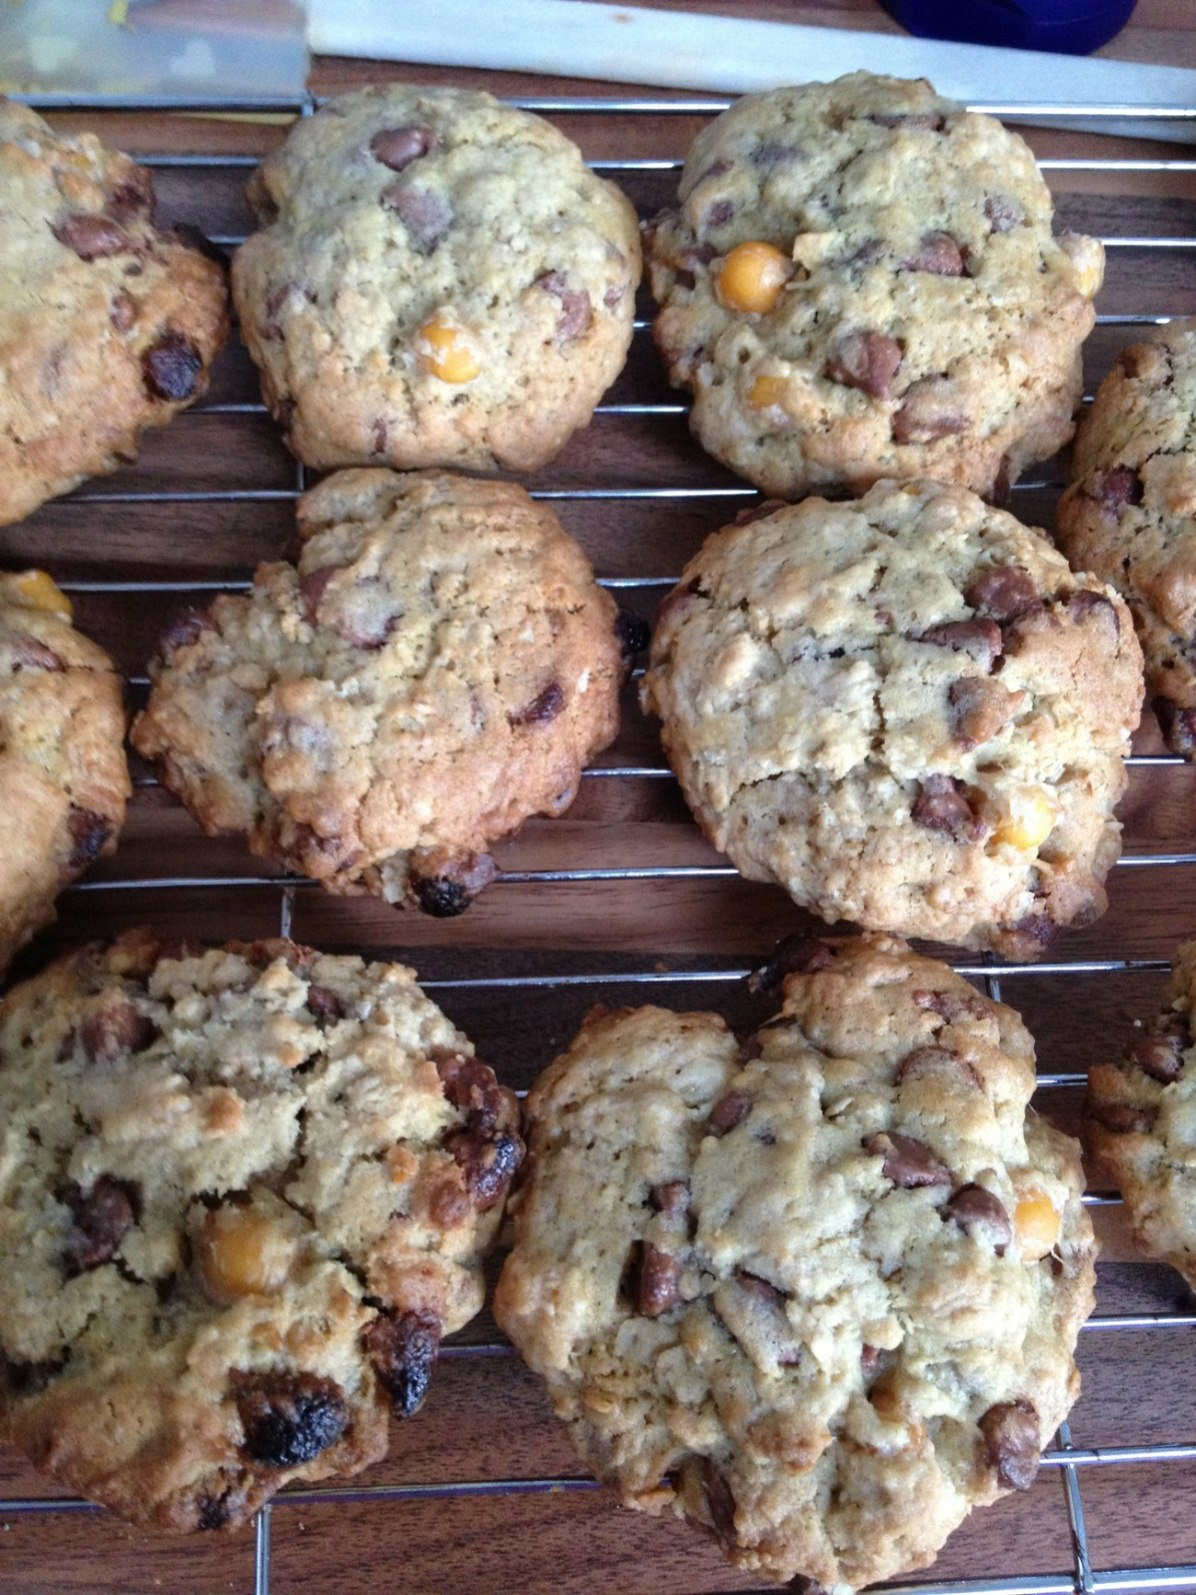 Chocolate Chip and Chickpea Cookies